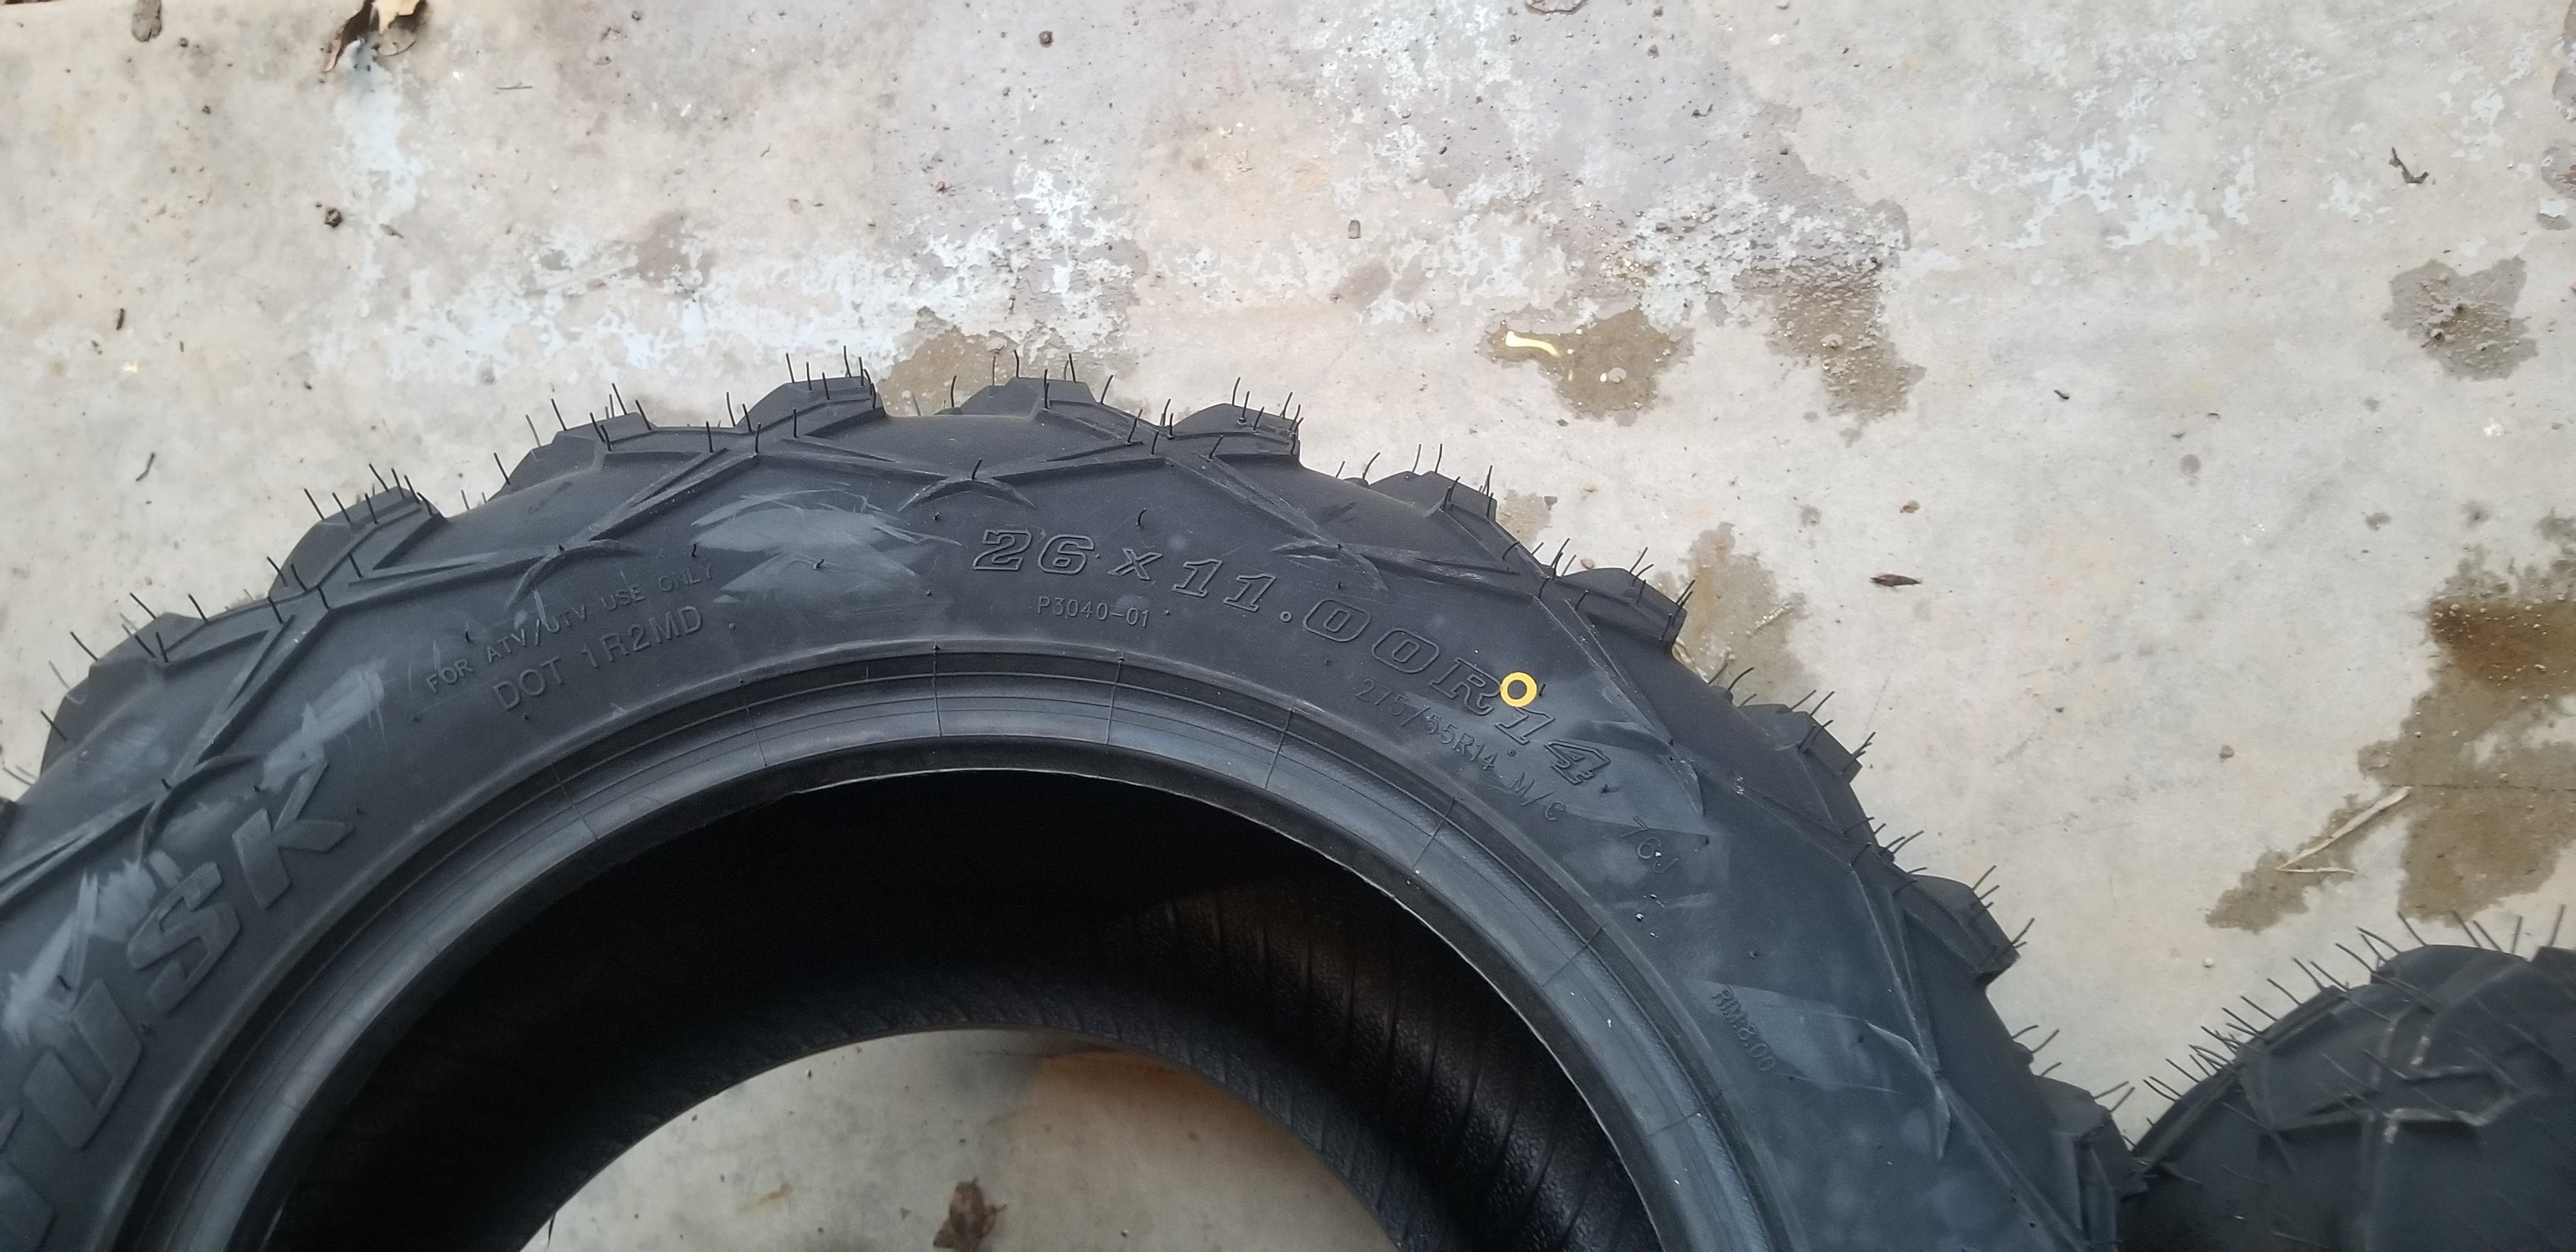 Utv Tires For Sale >> Utv Tires For Sale Classified Ads Coueswhitetail Com Discussion